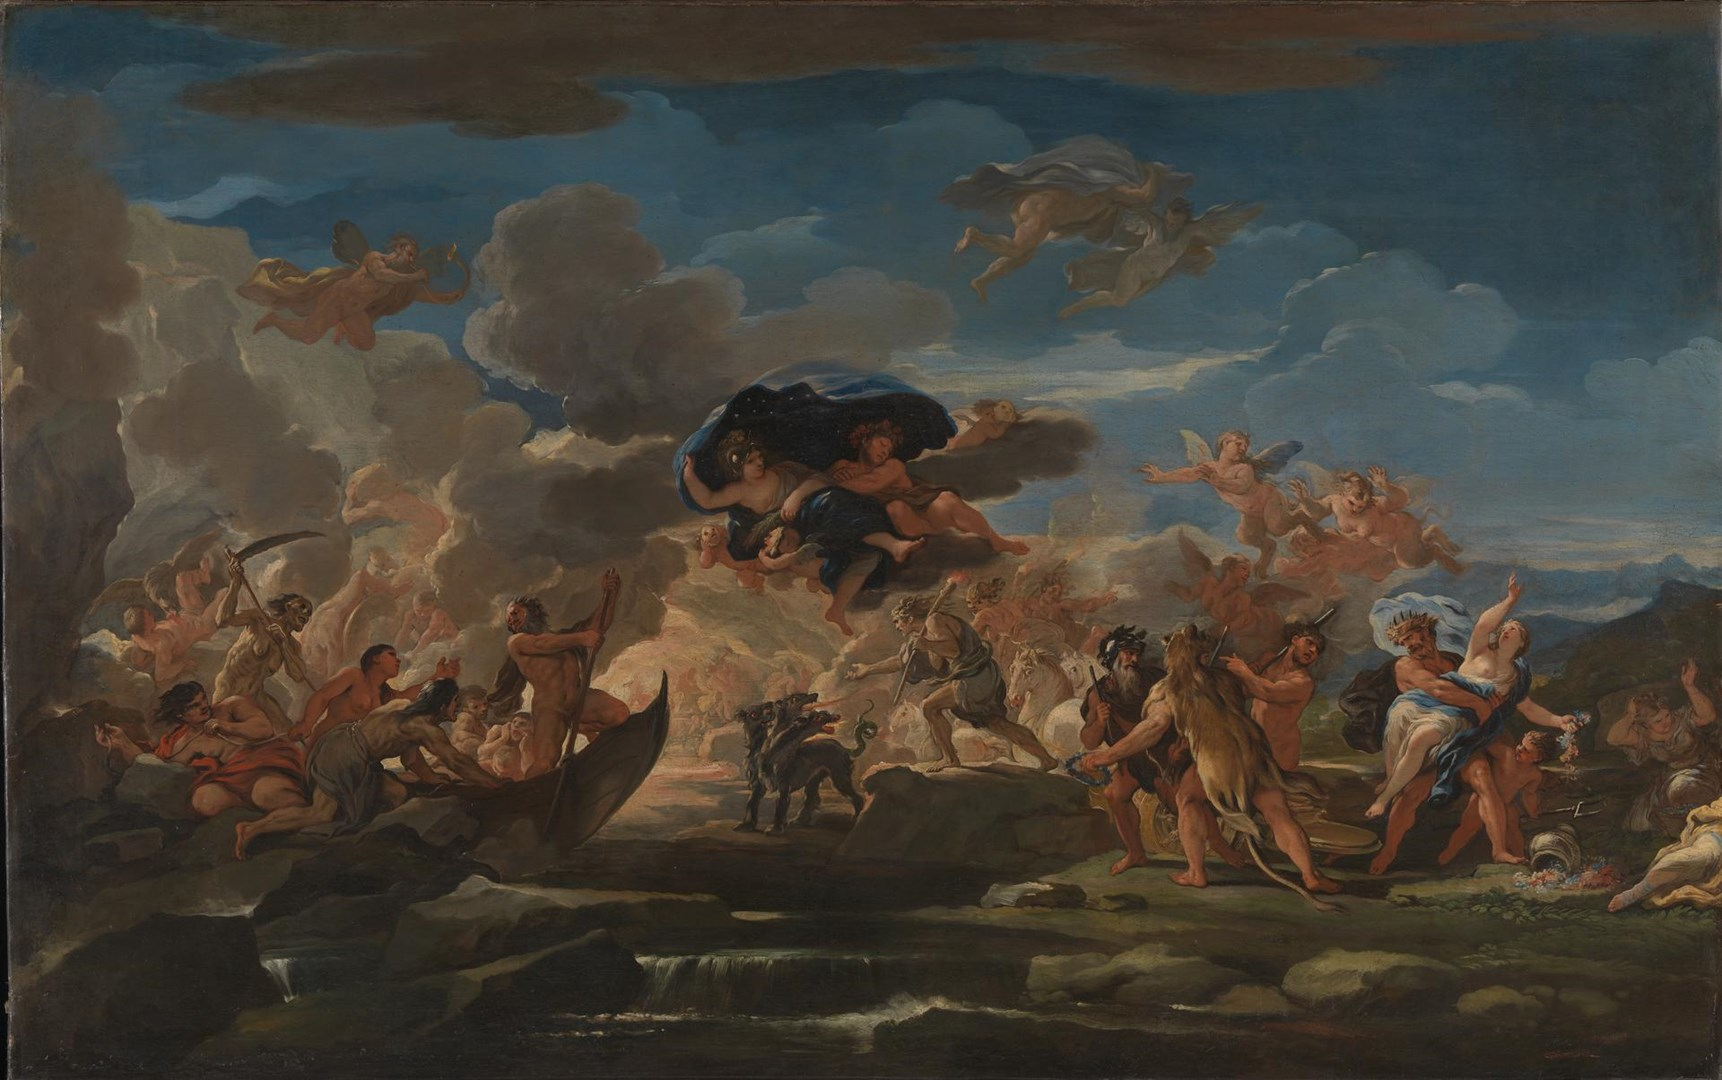 Mythological Scene with the Rape of Proserpine by Luca Giordano